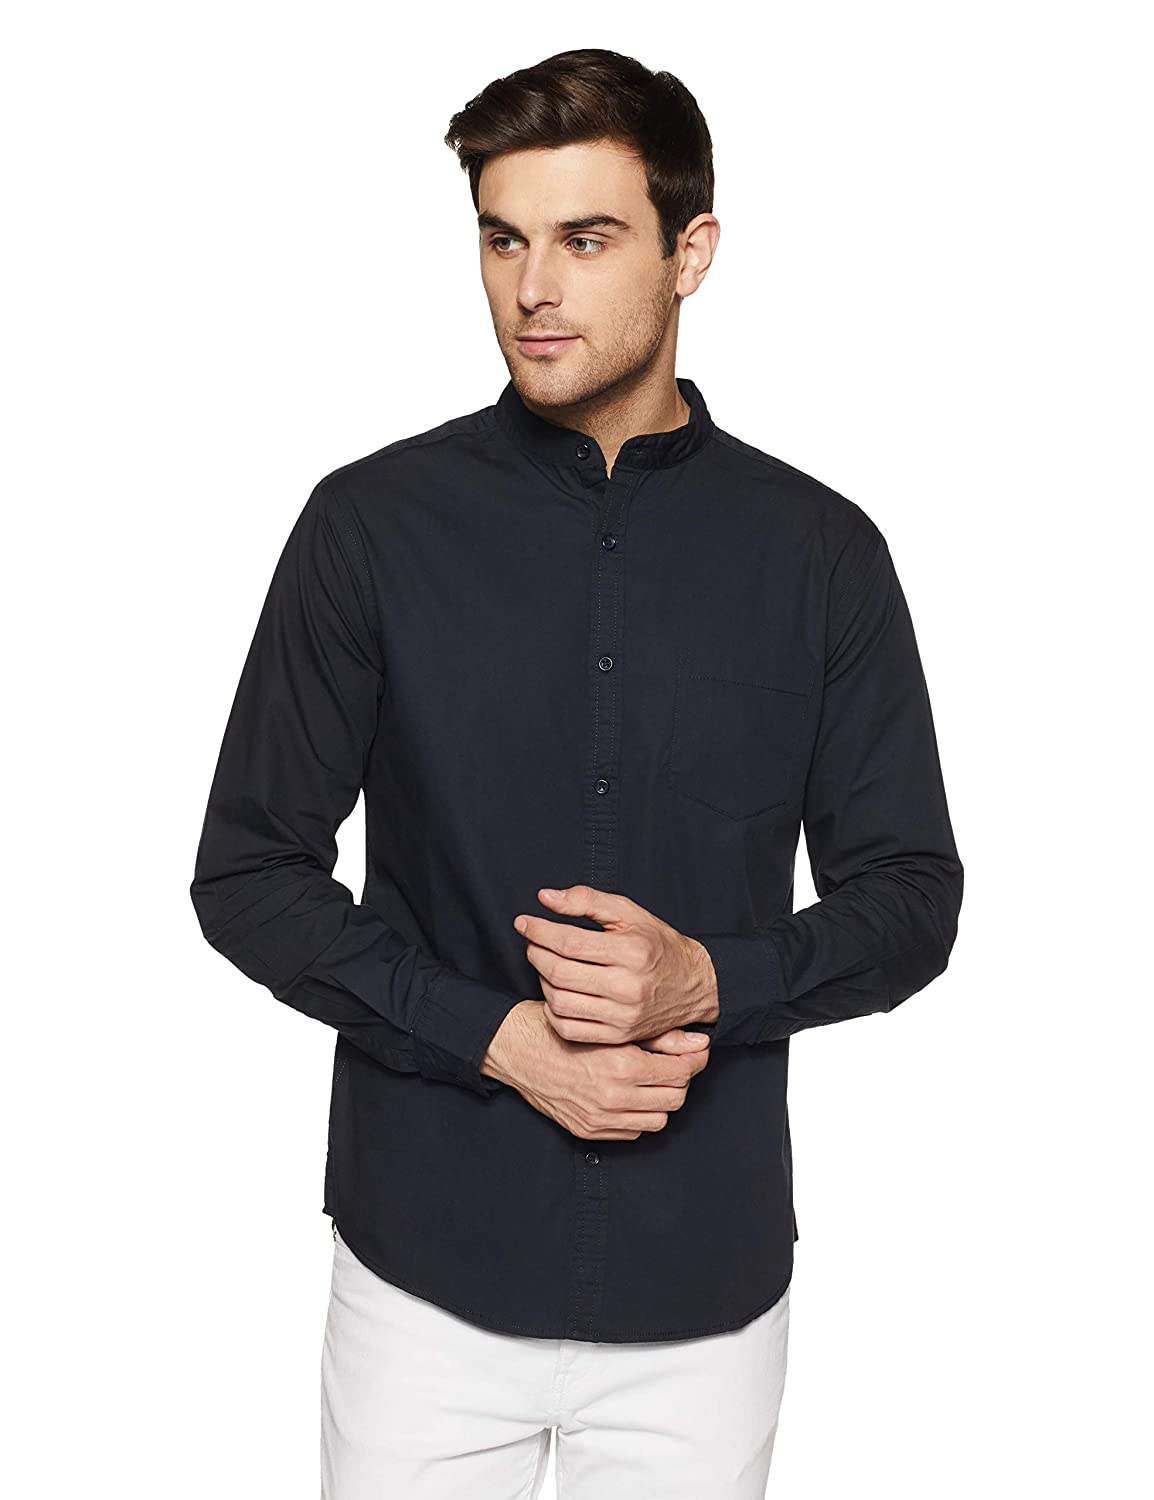 61976c488 Amazon Brand - Symbol Men's Plain Casual Shirt: Amazon.in: Clothing &  Accessories